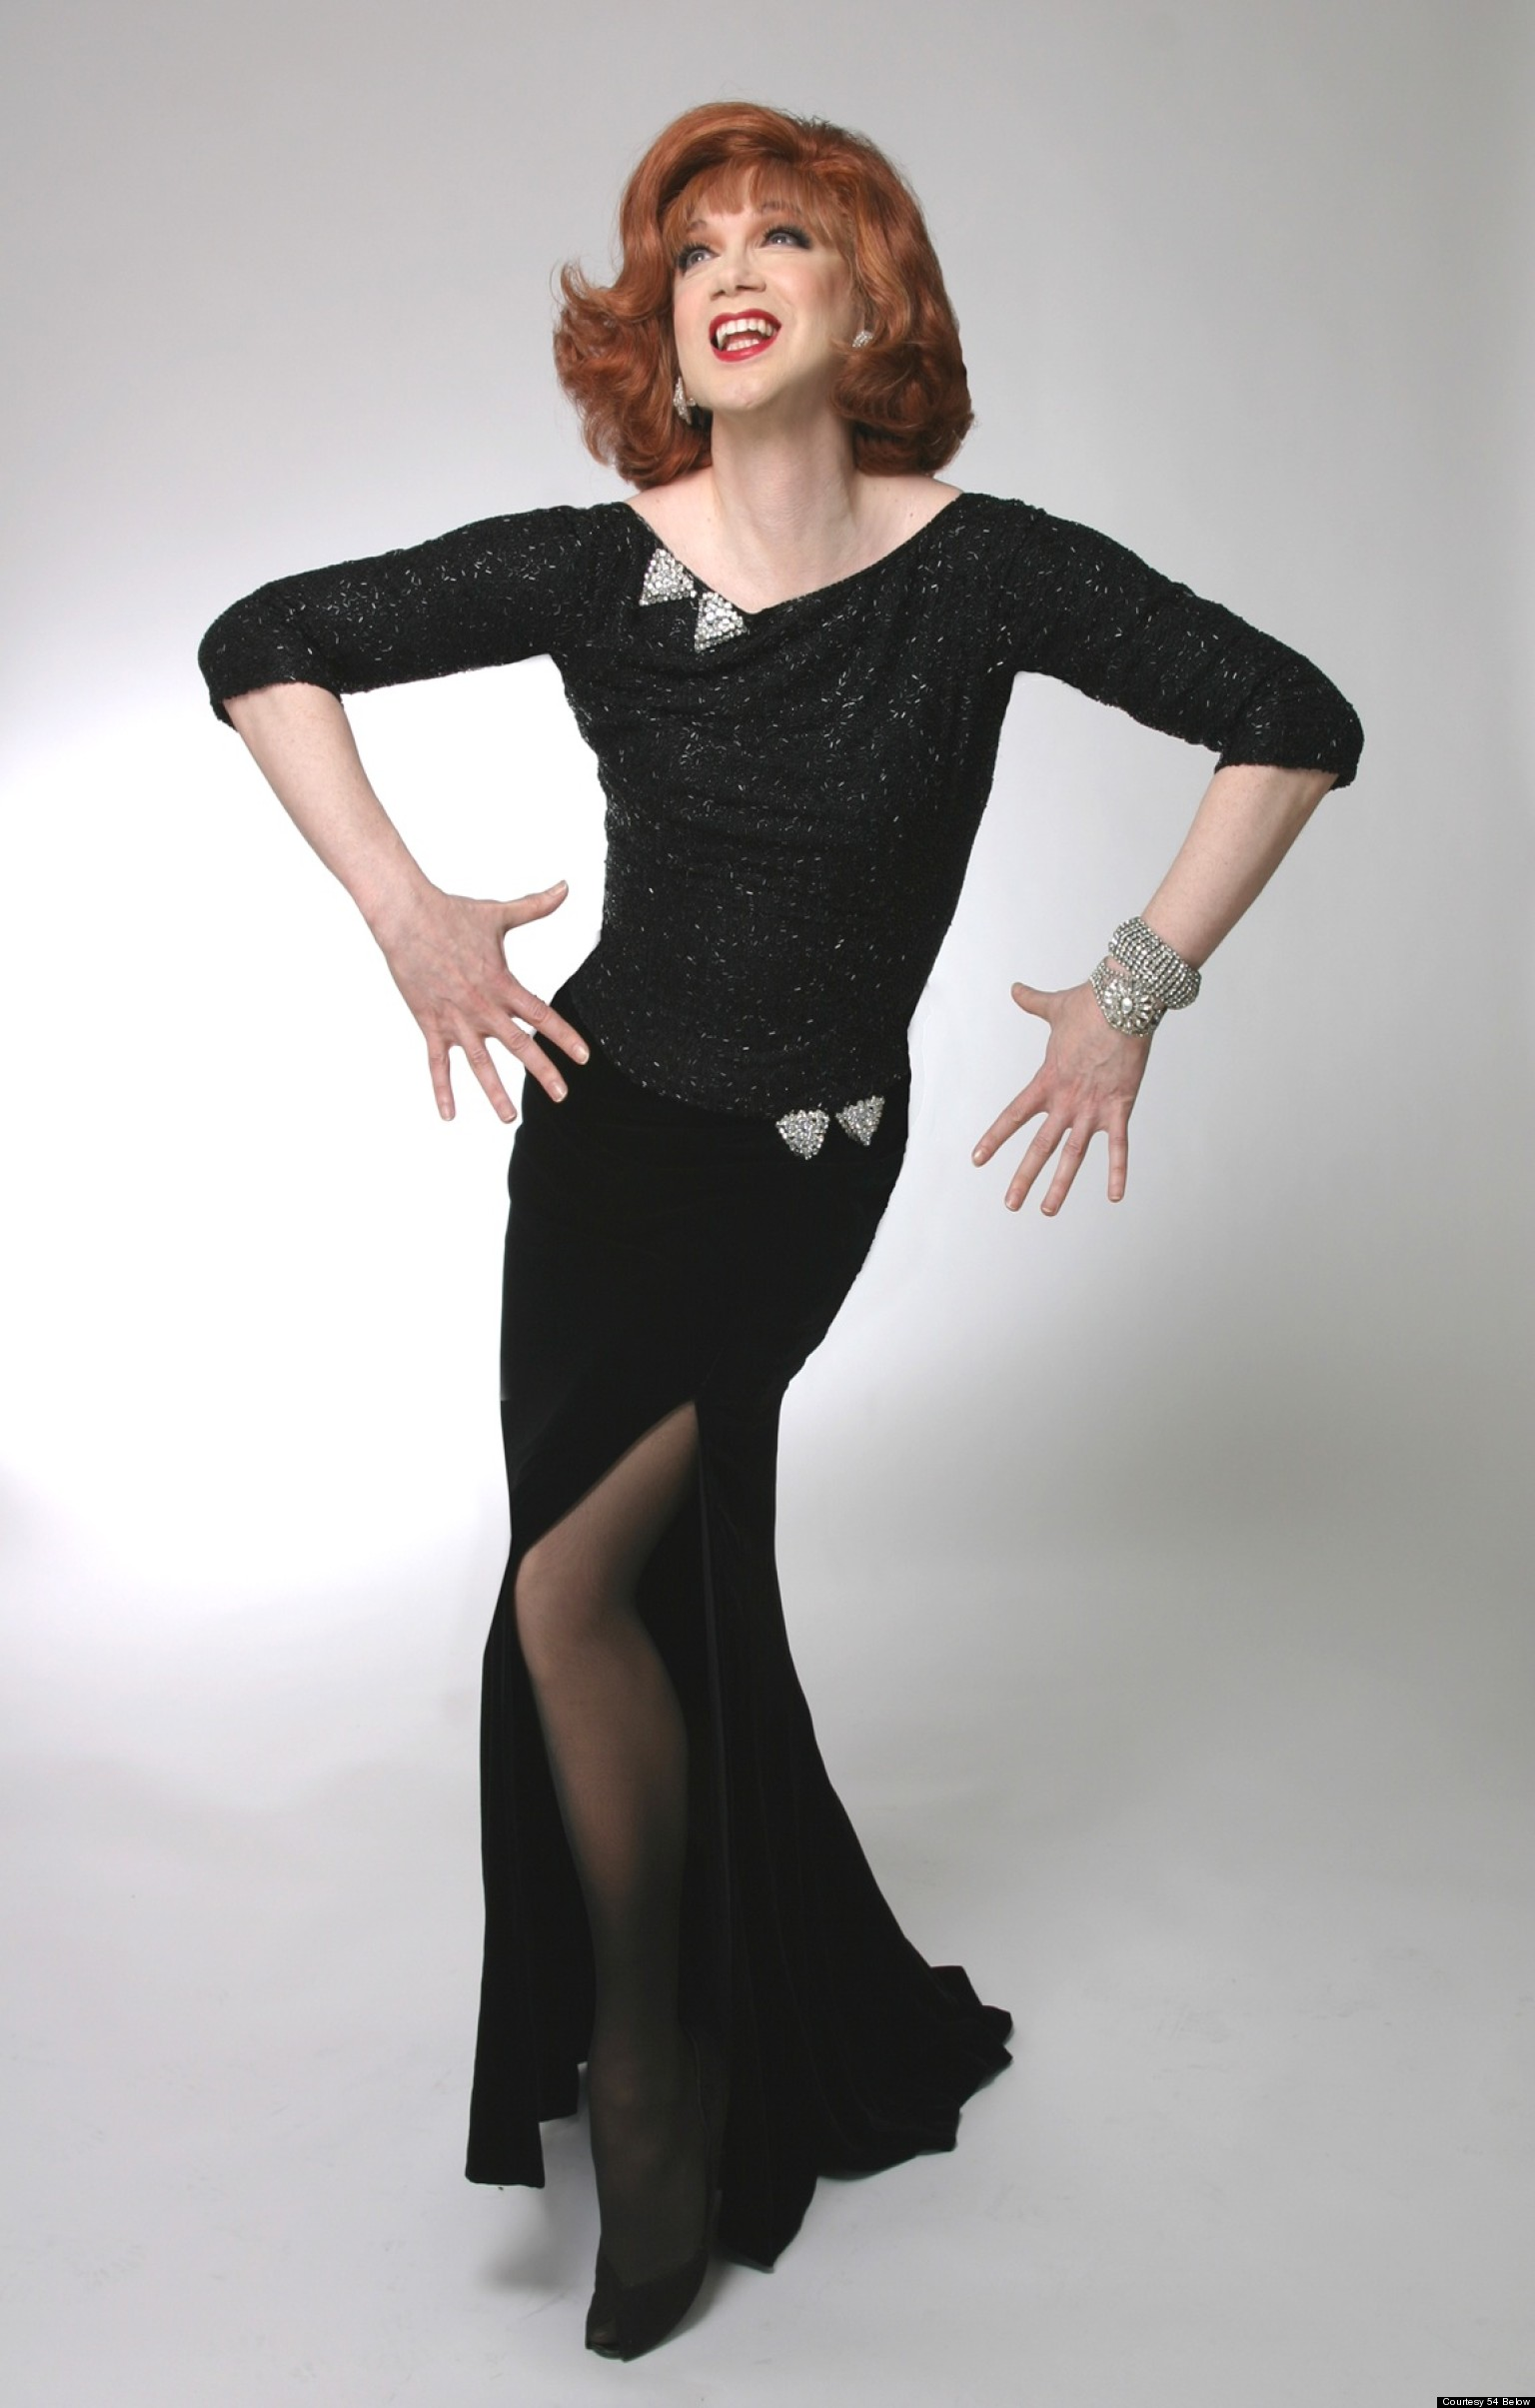 CHARLES BUSCH 54 BELOW Facebook